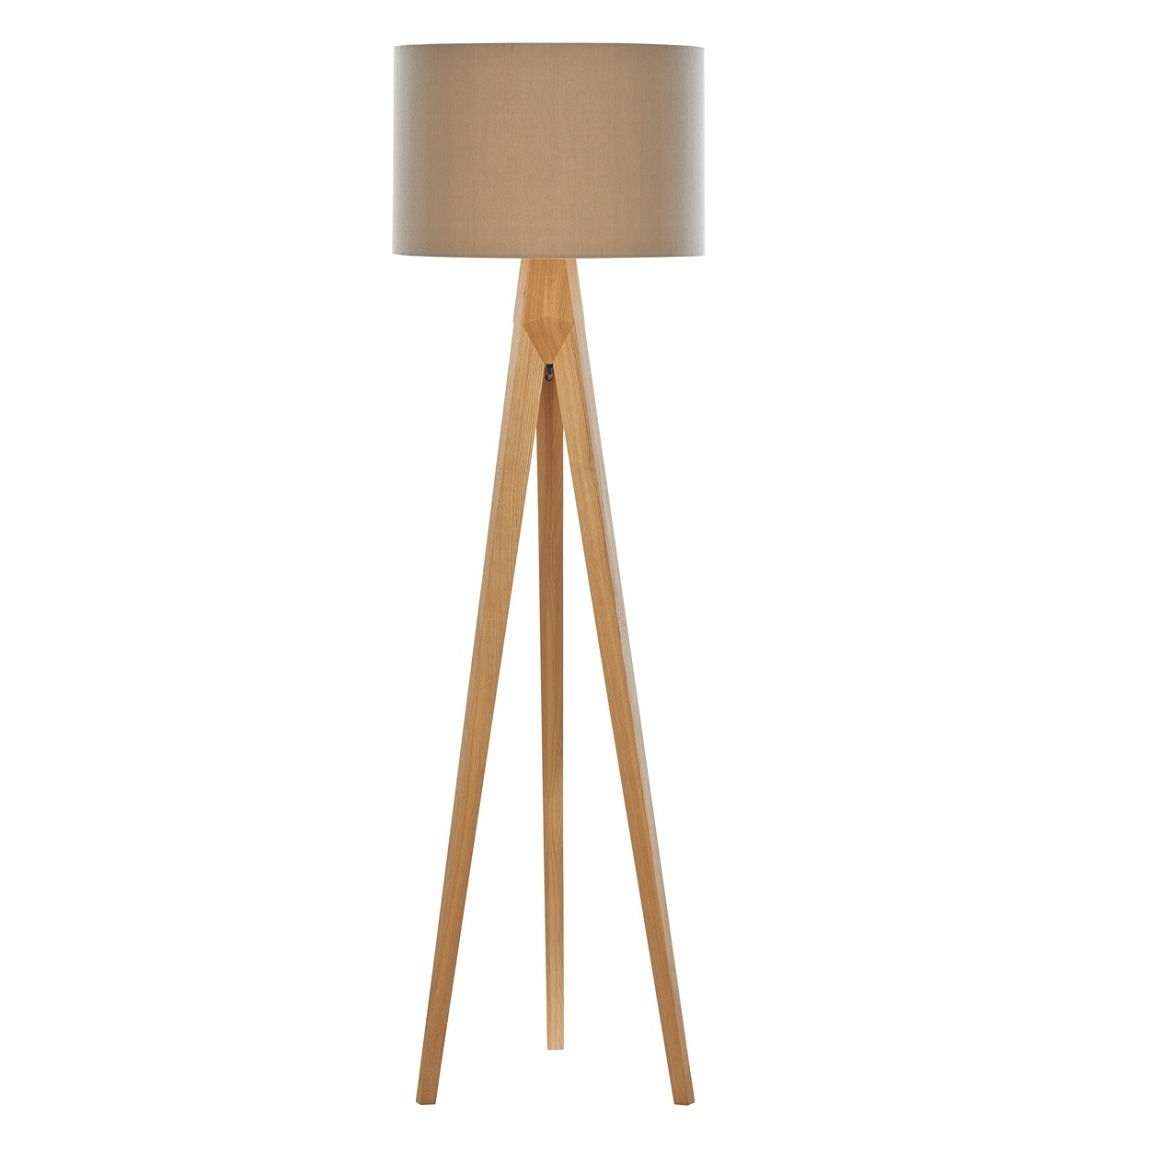 Debenhams Home Collection 'hudson' Wooden Tripod Floor Lamp Living With Regard To Trendy Debenhams Table Lamps For Living Room (View 3 of 15)